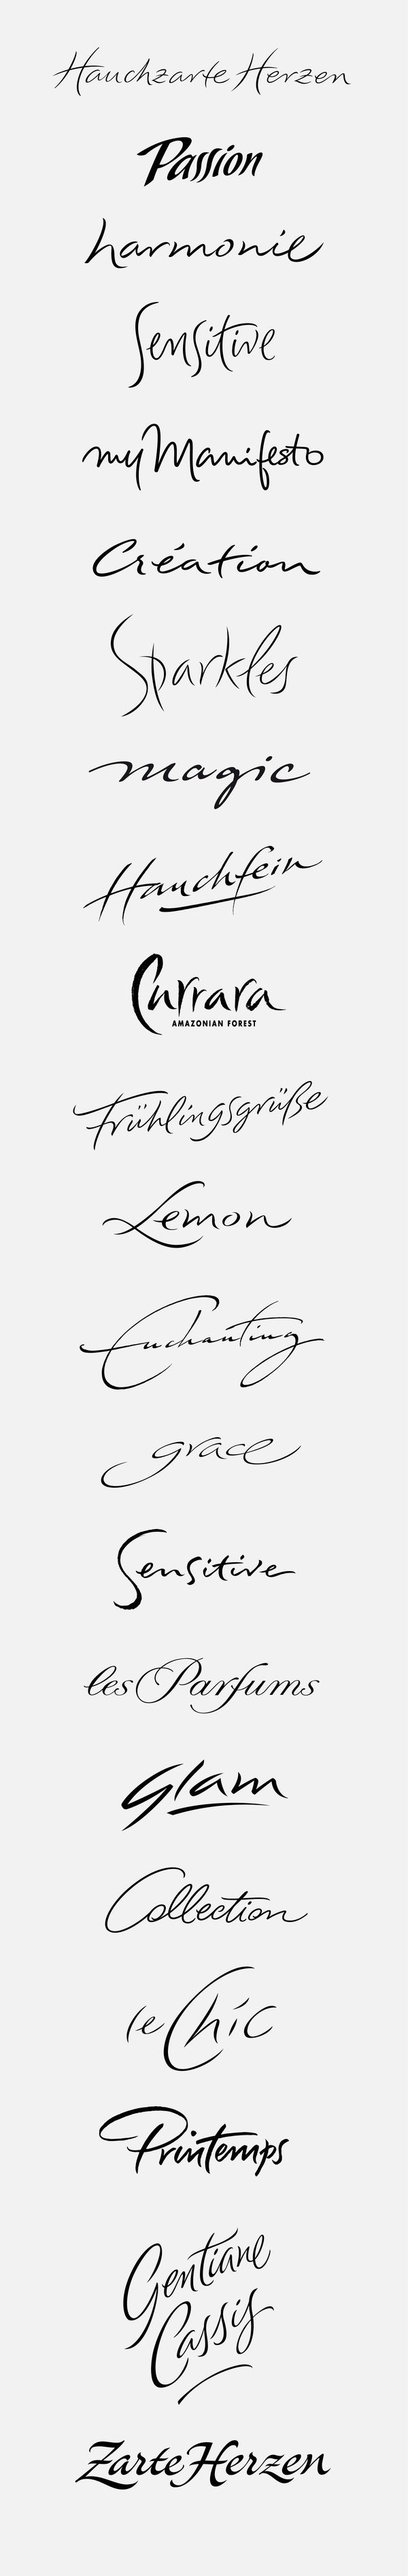 25+ best Tattoo fonts ideas on Pinterest | Script tattoo fonts ...